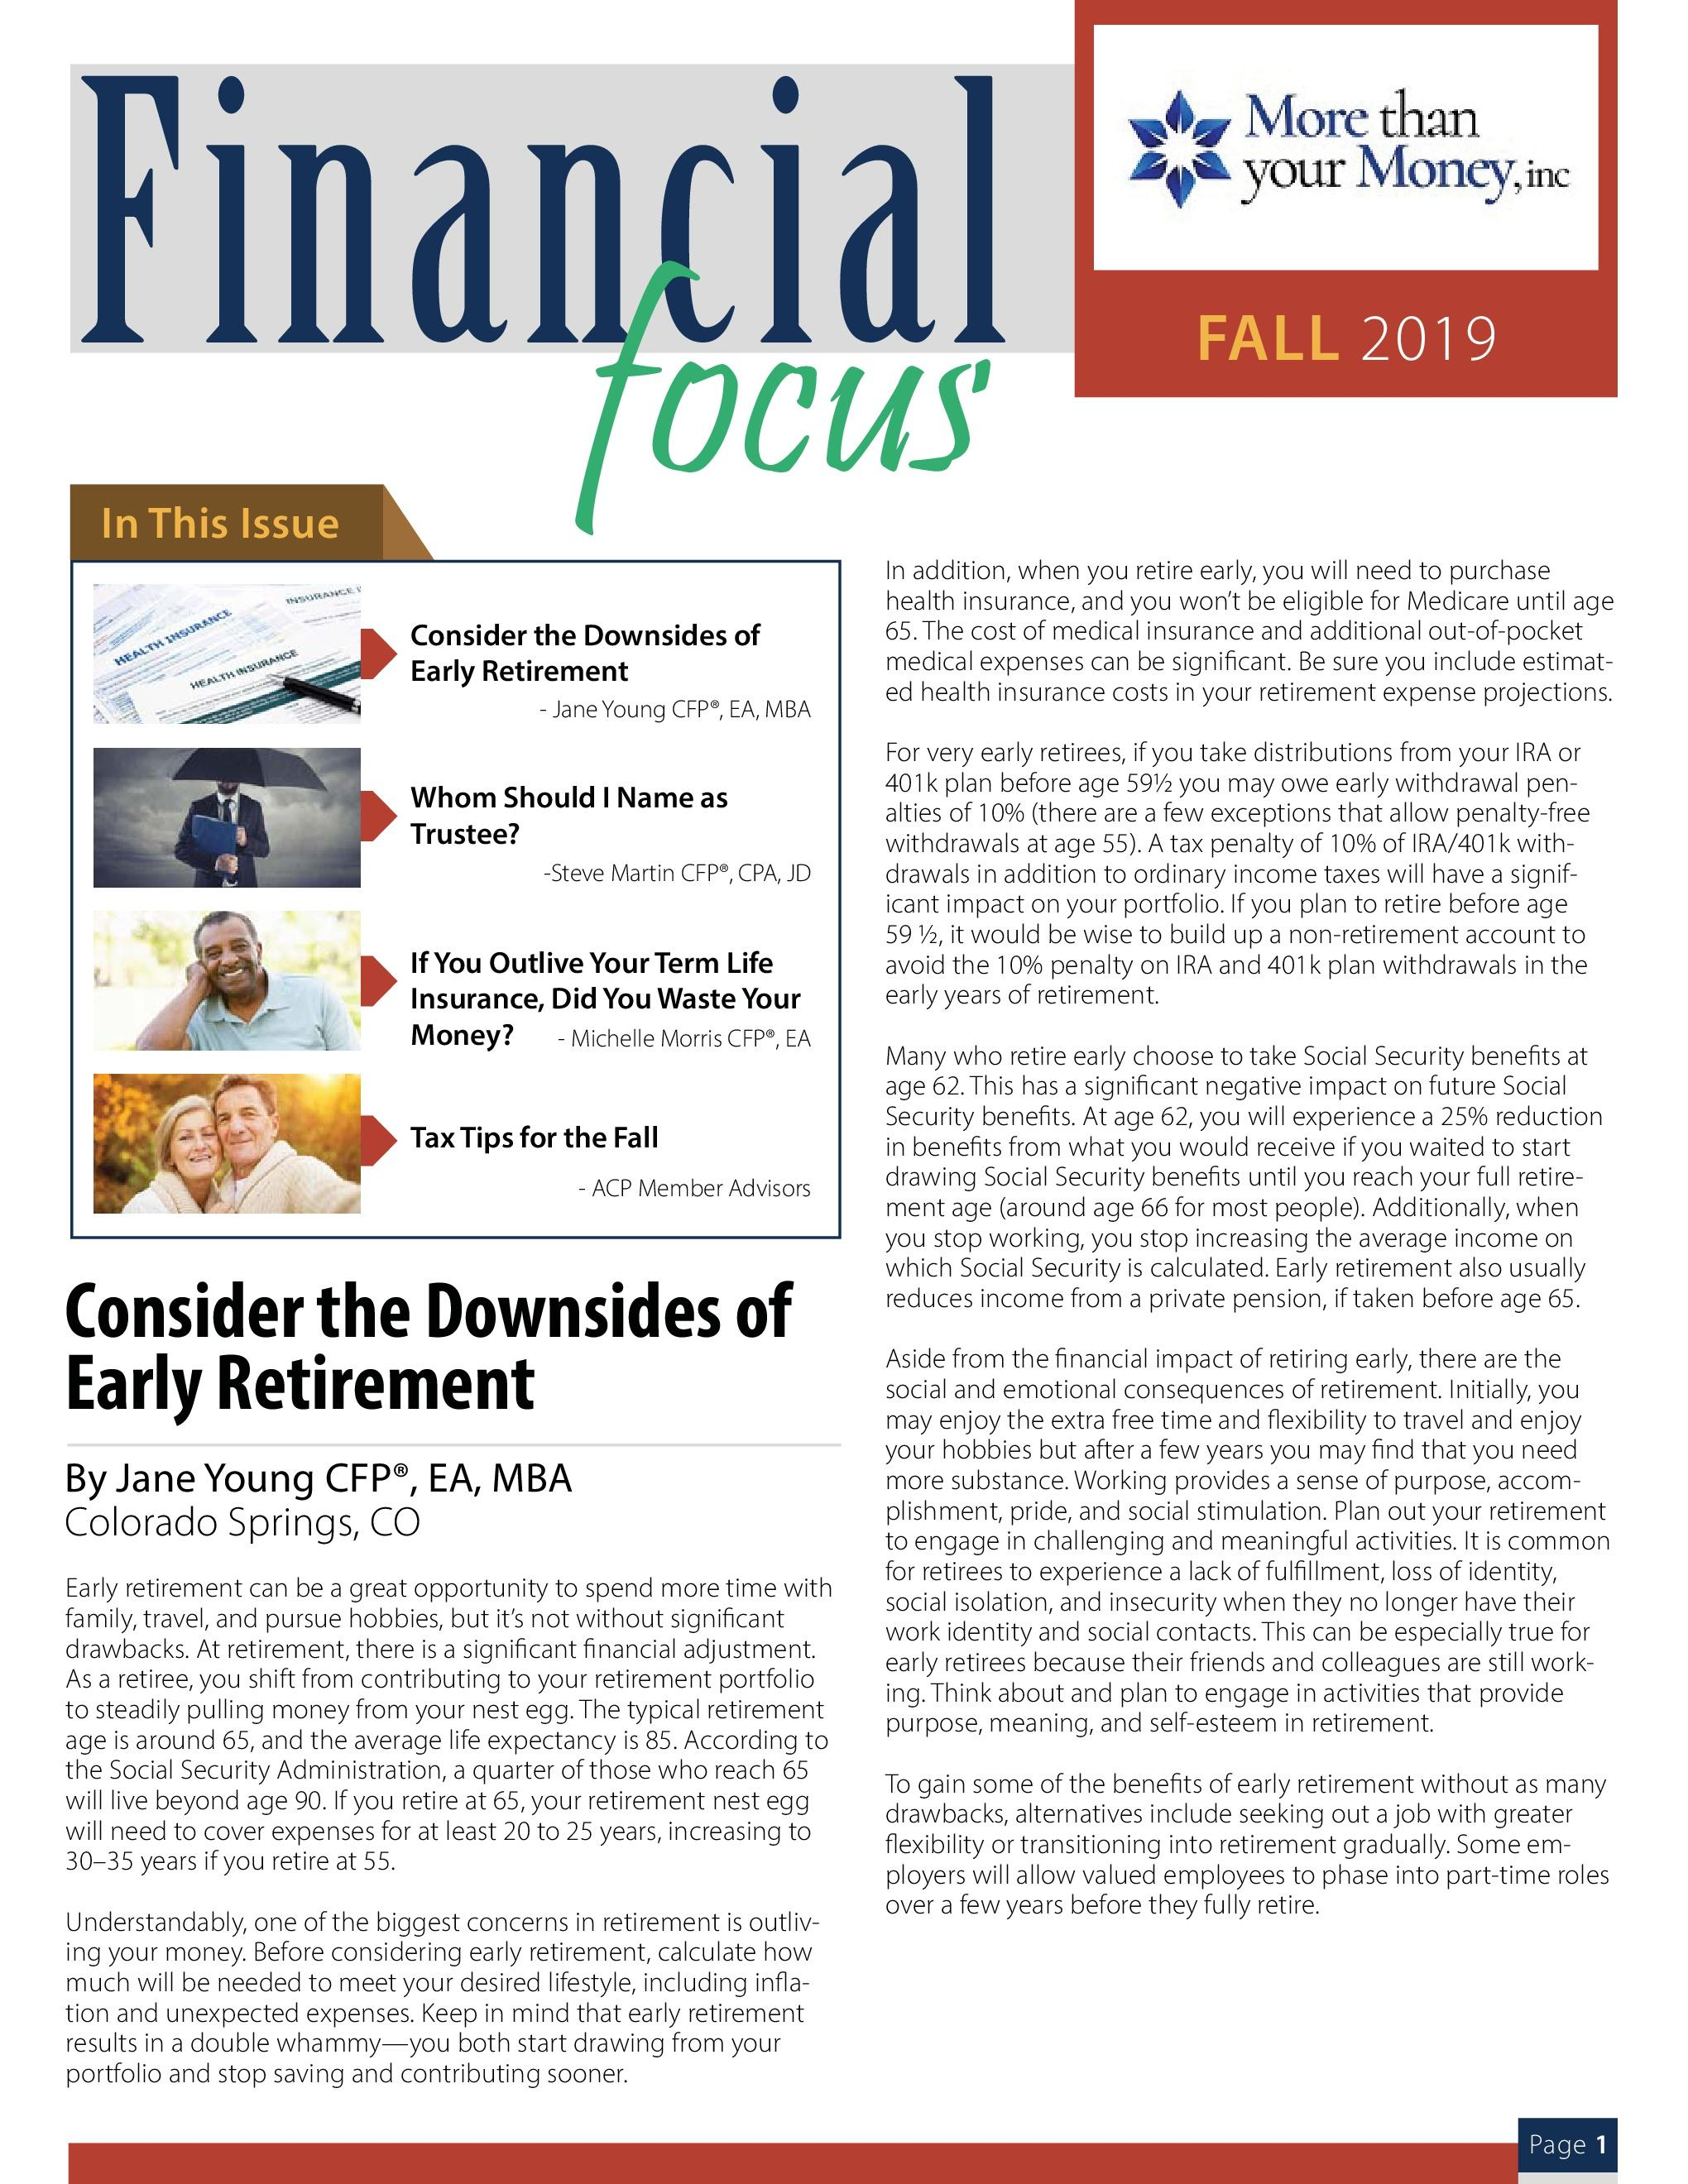 Financial Focus Fall 2019 Thumbnail